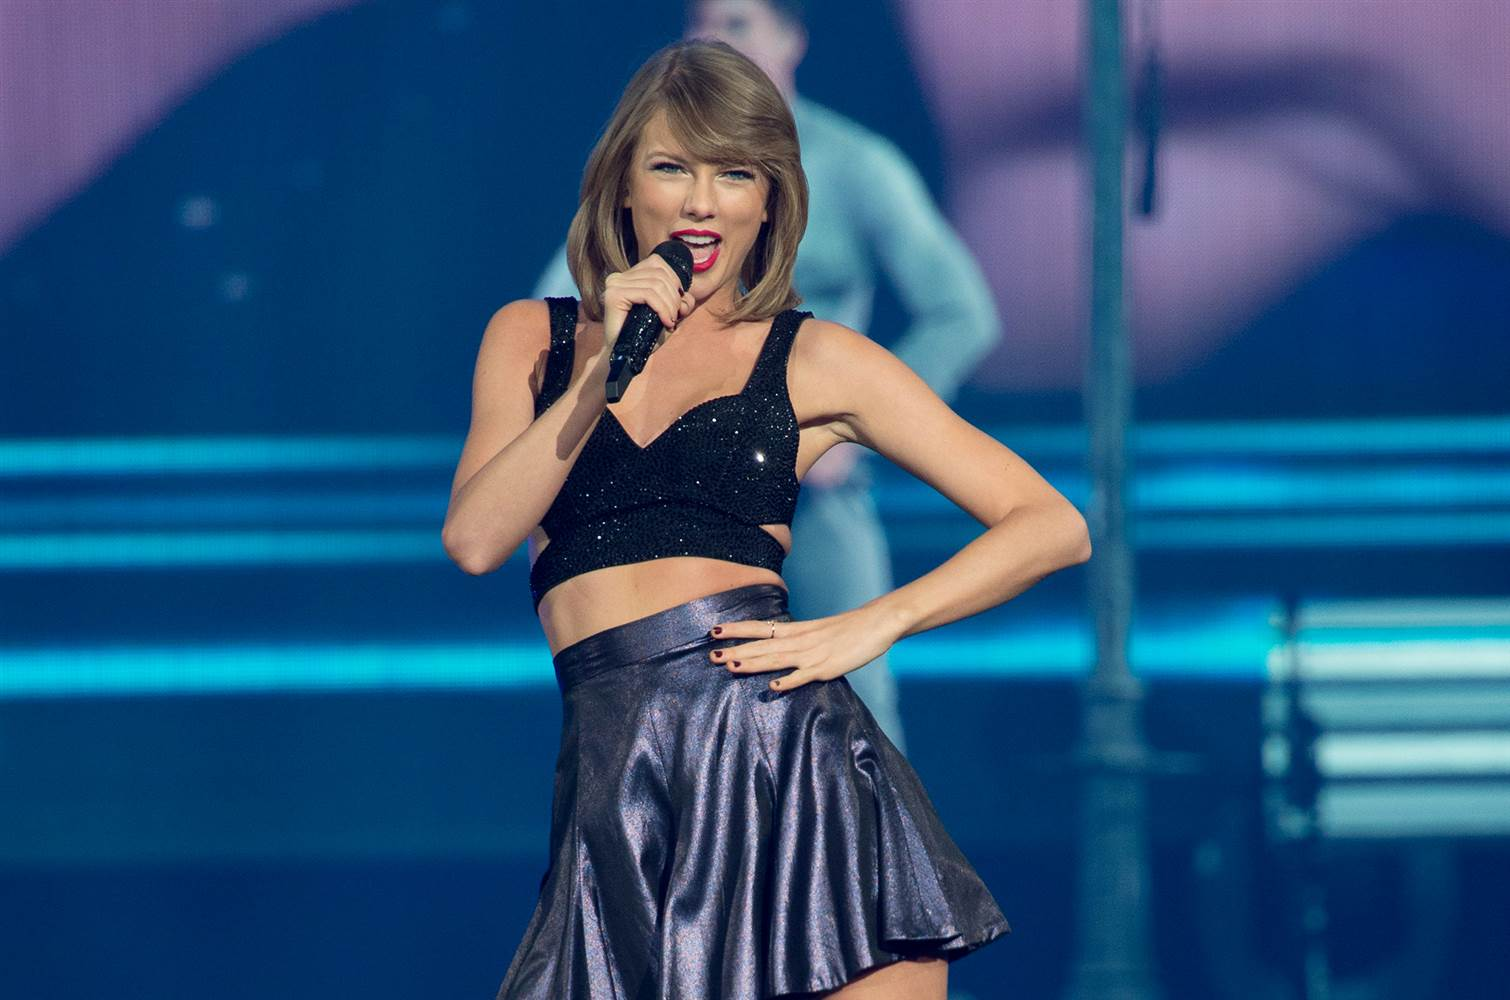 Fun with the Four Tendencies: Is Taylor Swift an Upholder?